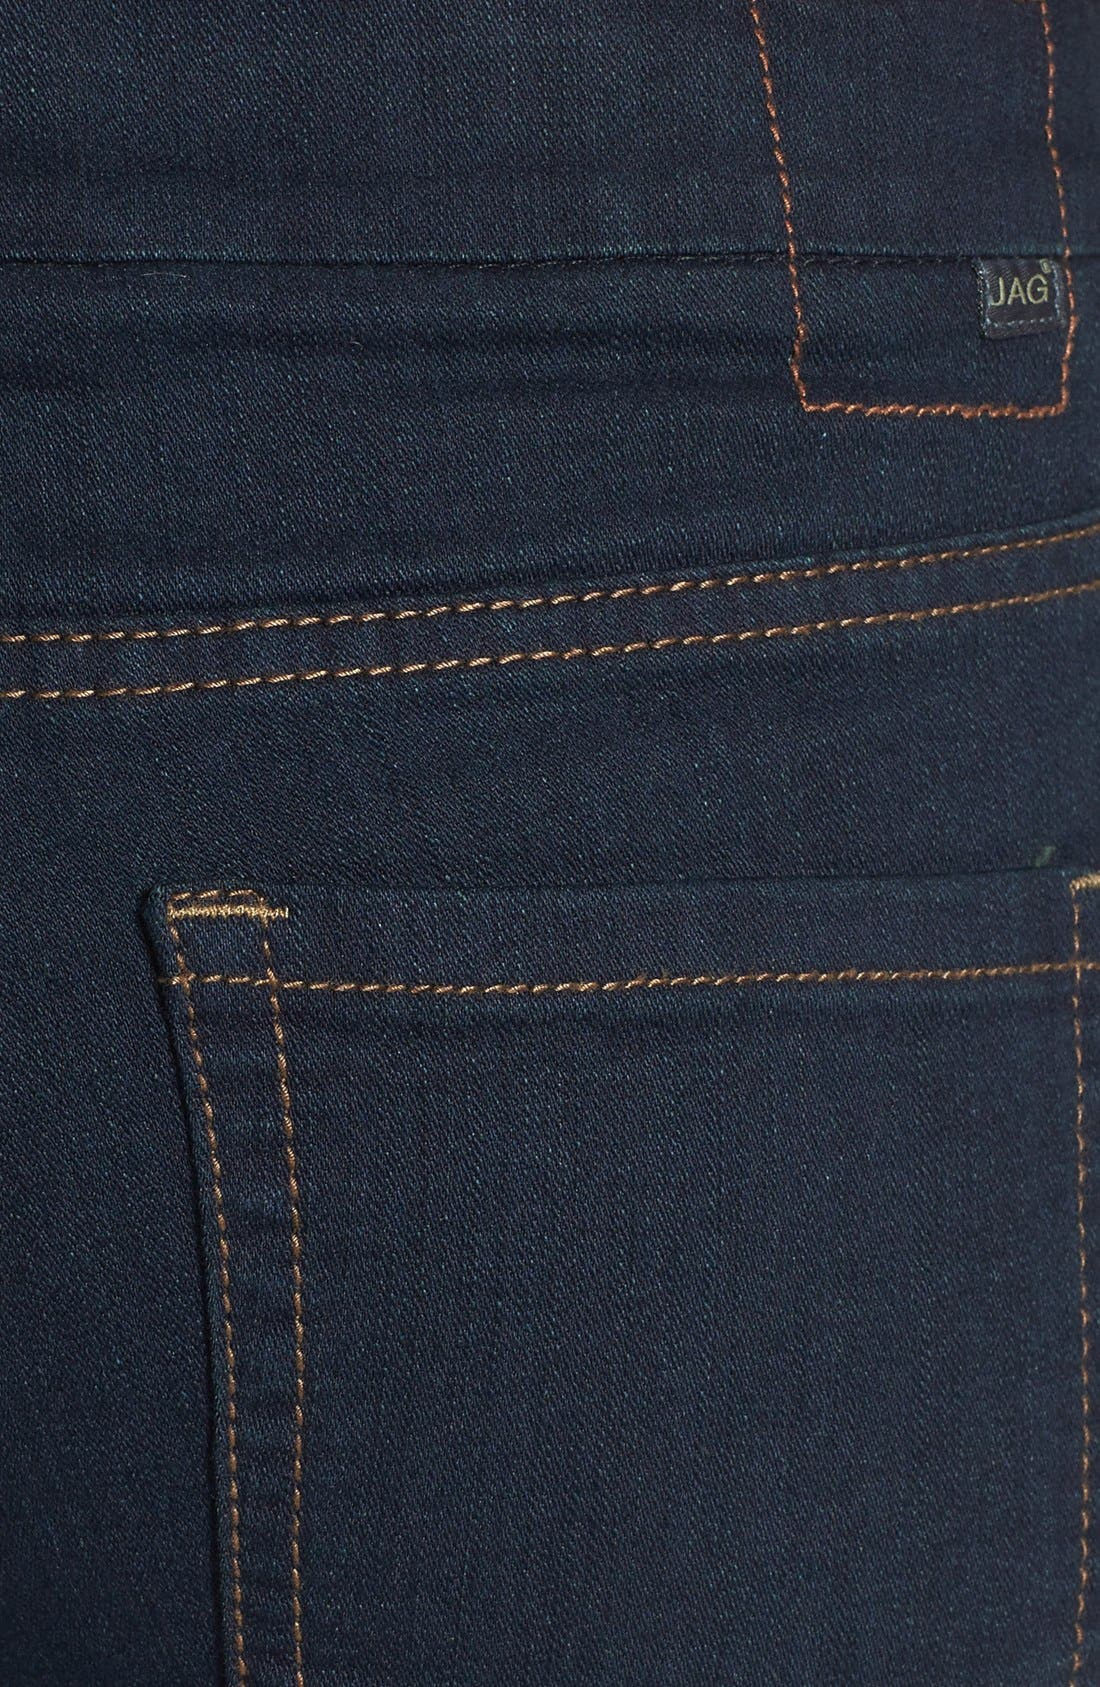 Alternate Image 4  - Jag Jeans 'Nora' Pull-On Skinny Stretch Jeans (After Midnight) (Regular & Petite)